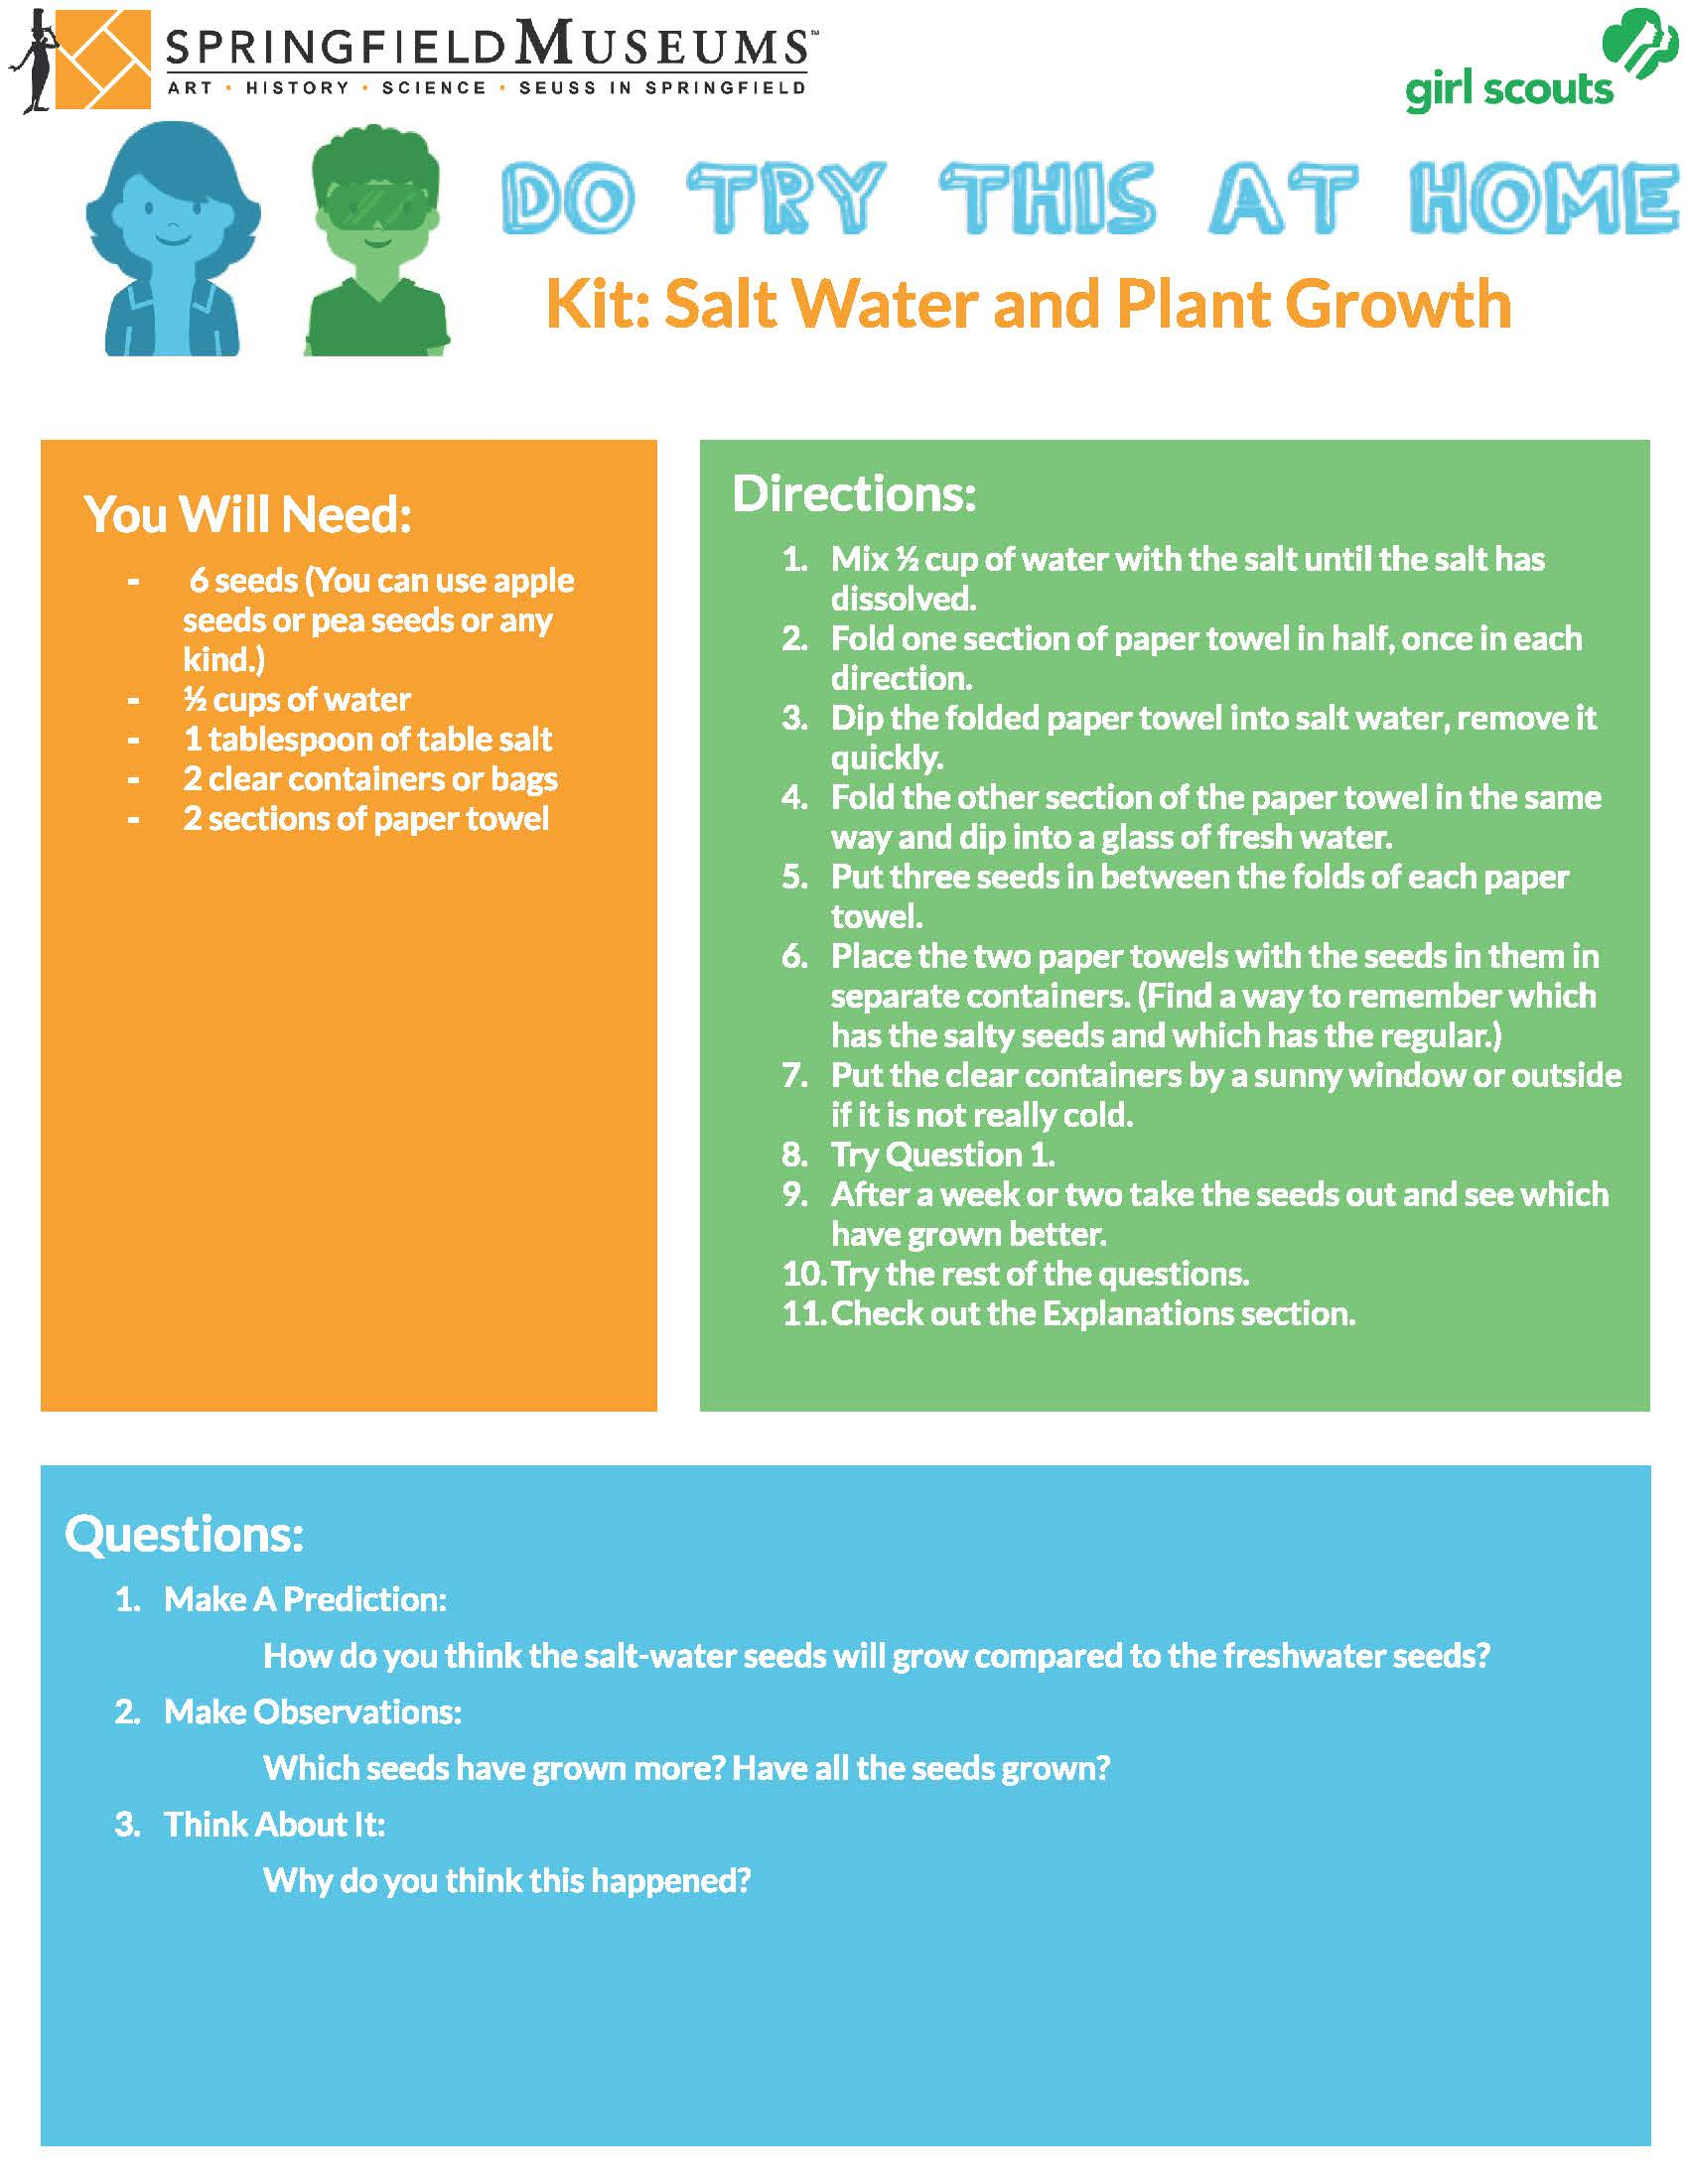 Do Try This at Home Kit: Salt Water and Plant Growth